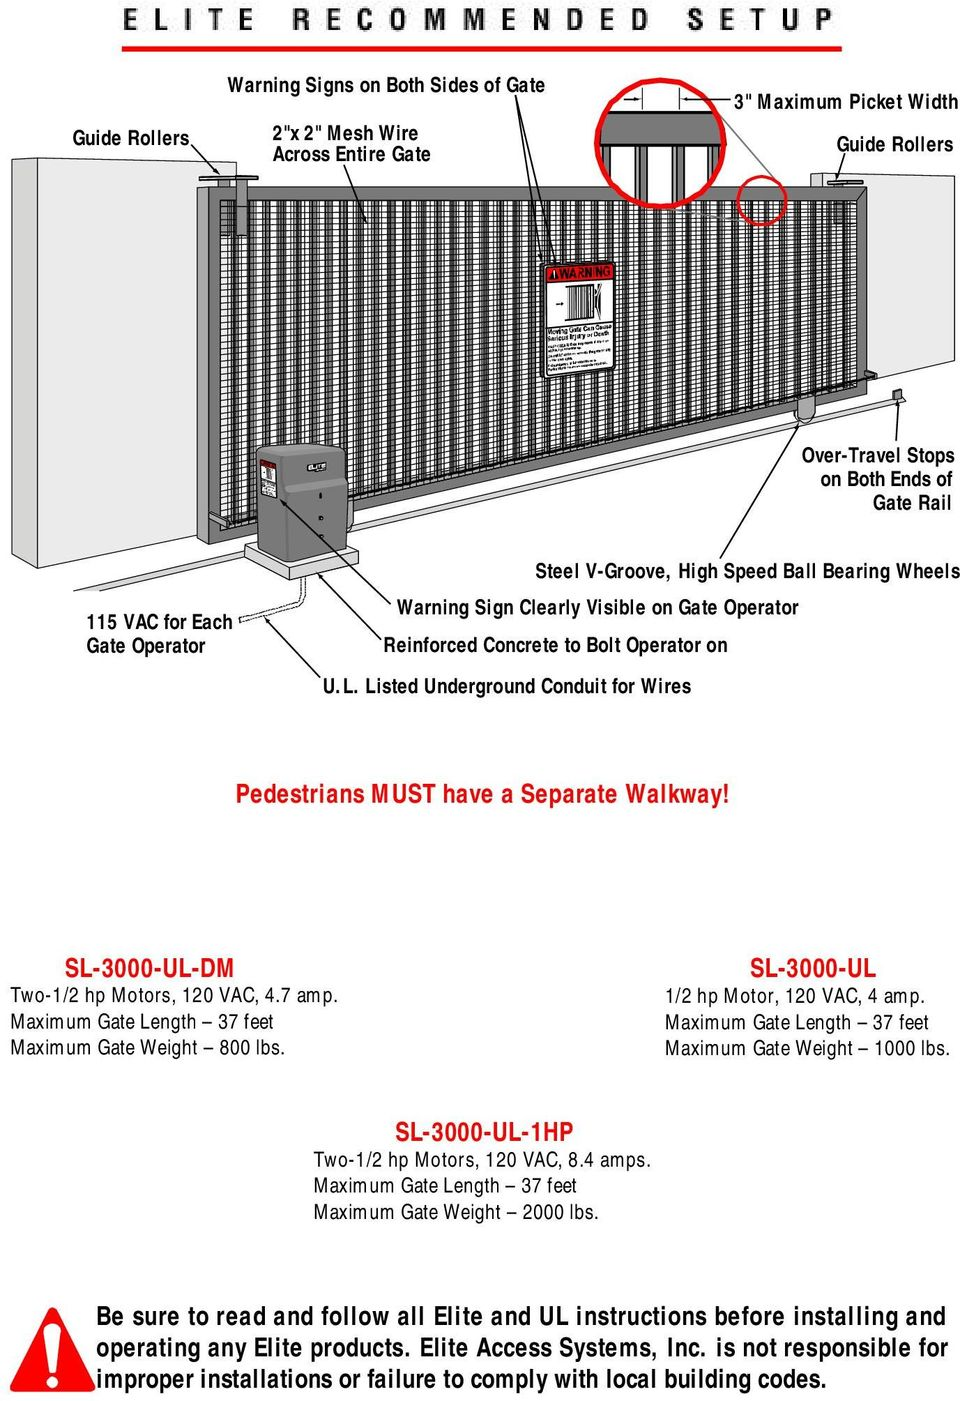 Installation Instructions Regarding The Gate Operator Pdf Opener Diagram Besides Electric Fence Wire Listed Underground Conduit For Wires Pedestrians Must Have A Separate Walkway Sl 000